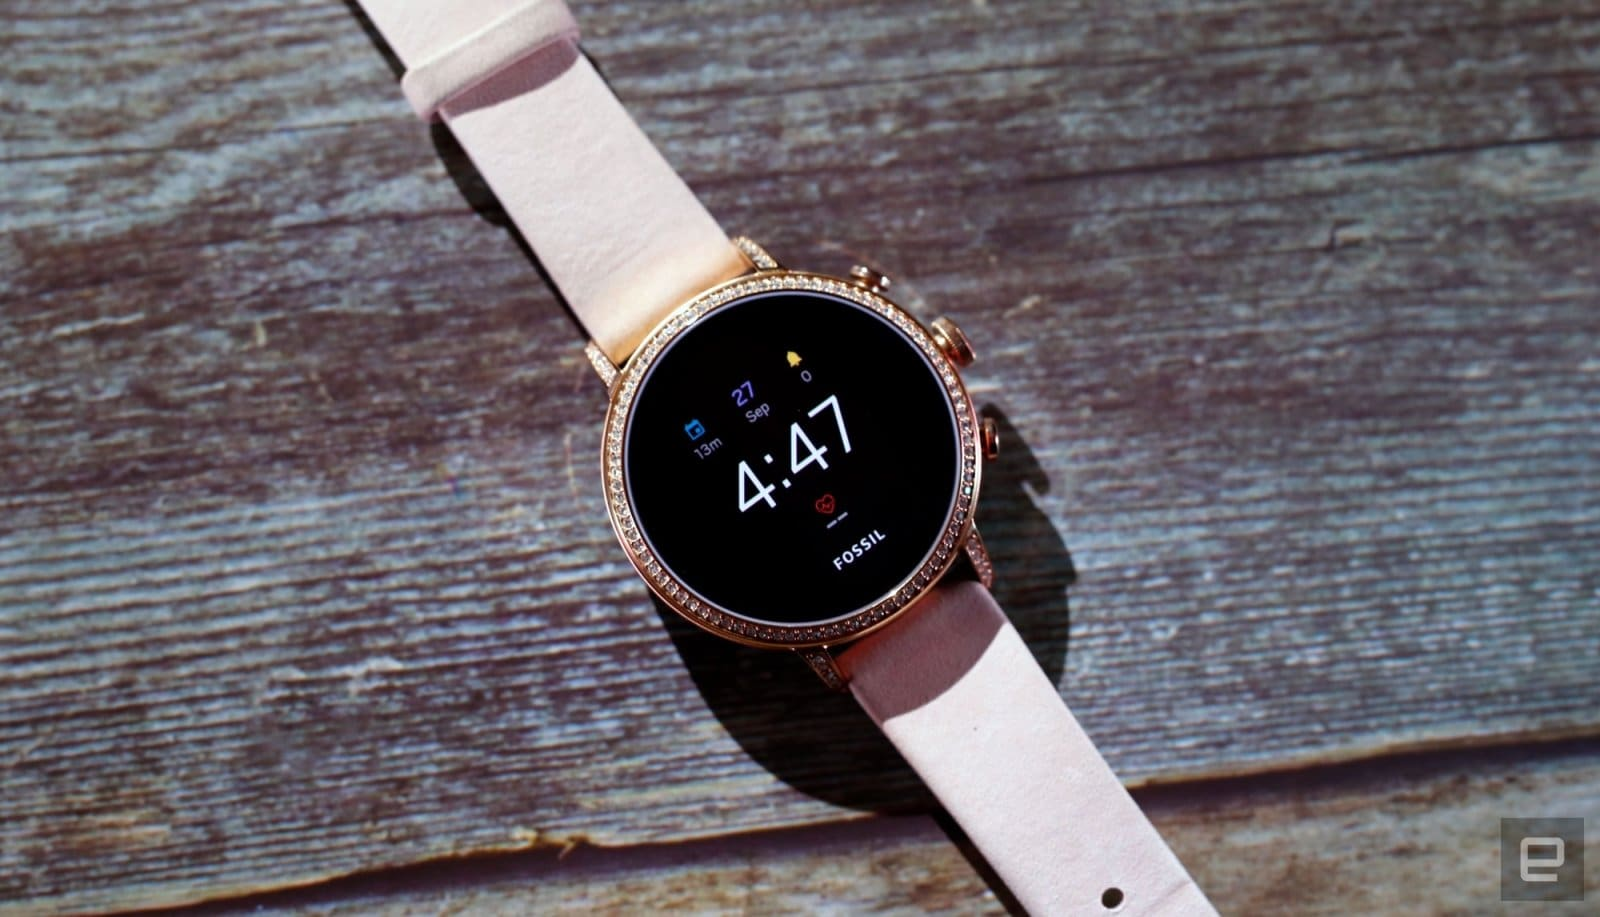 Wear OS on Fossil watch